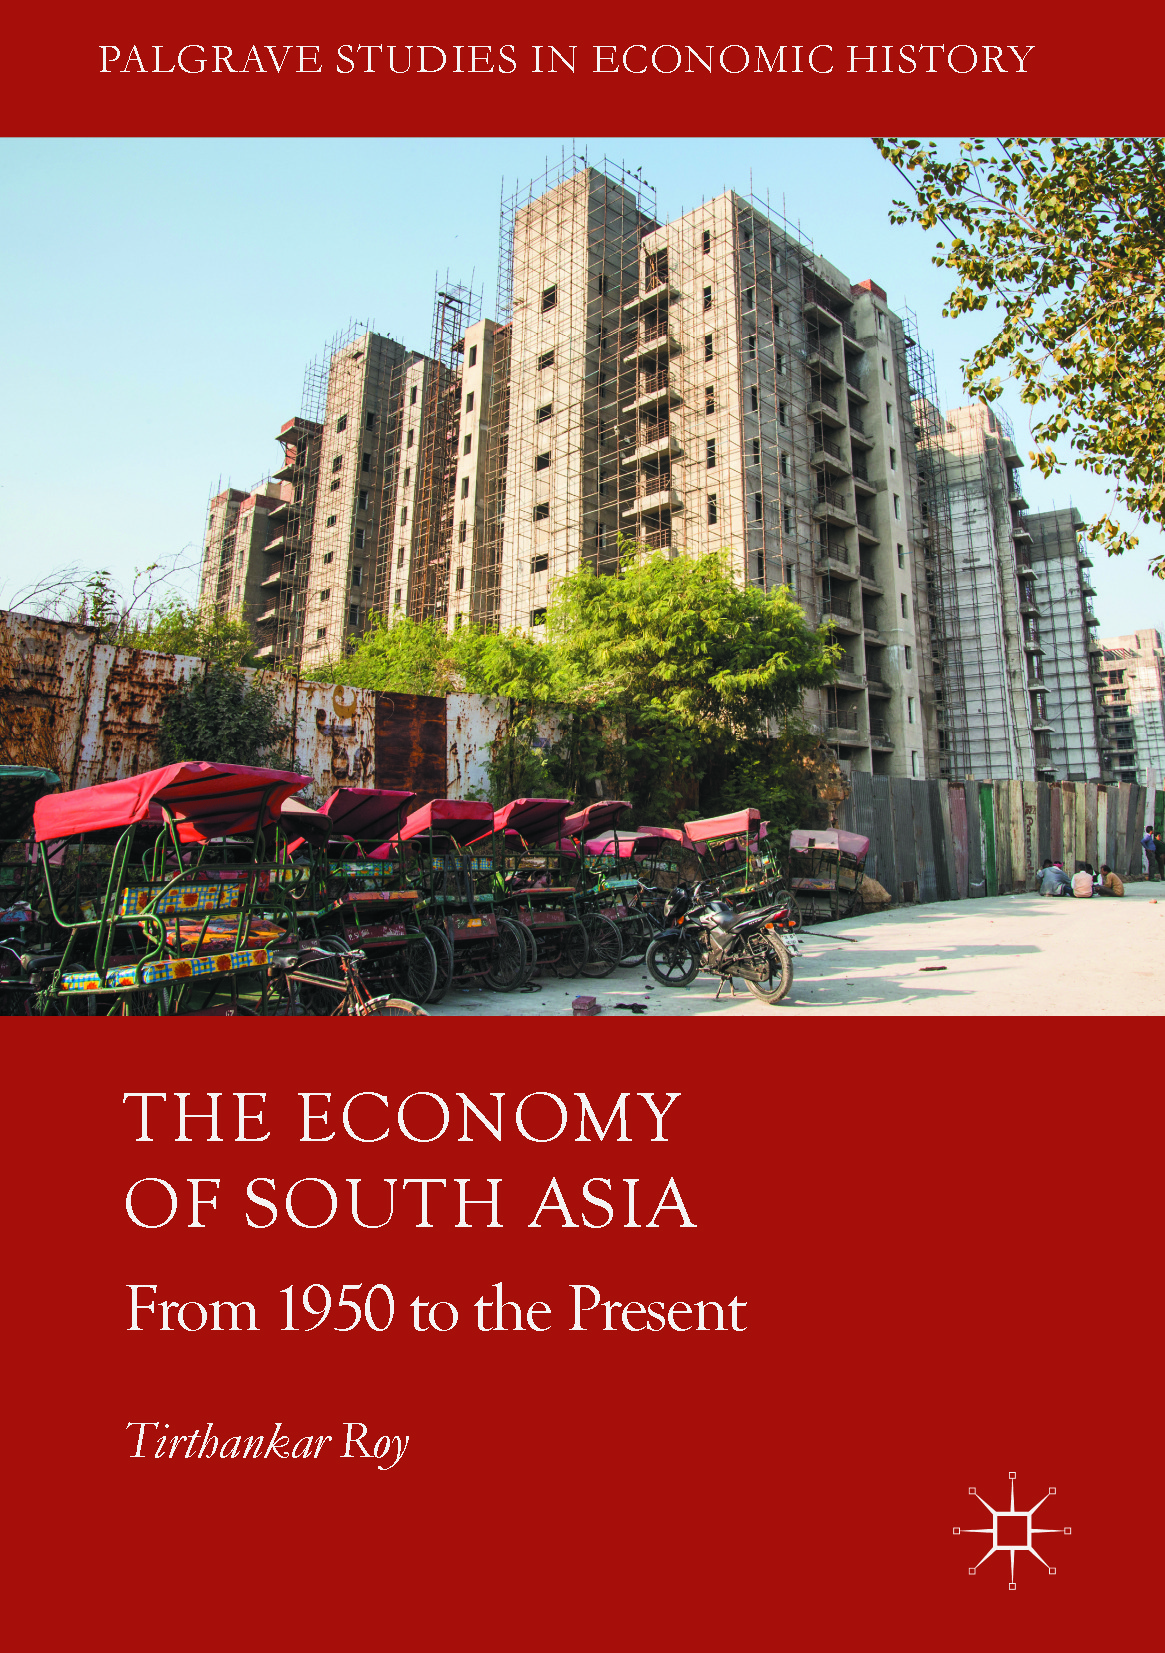 Roy, Tirthankar - The Economy of South Asia, ebook